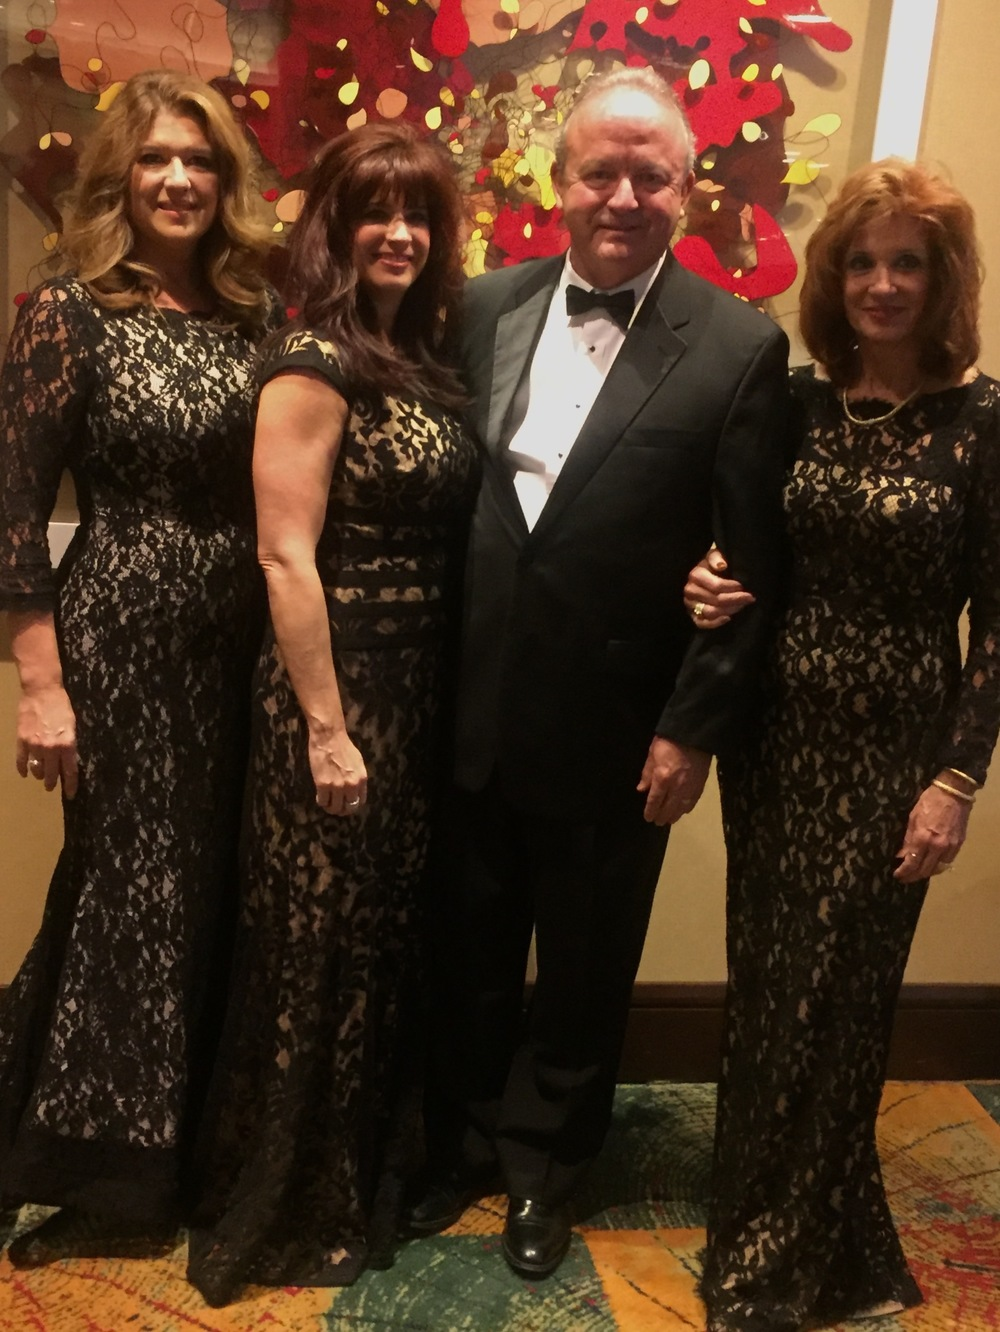 With my Daughters Natalie Stahl Ward, Karen Stahl Crump, and wife Anna.